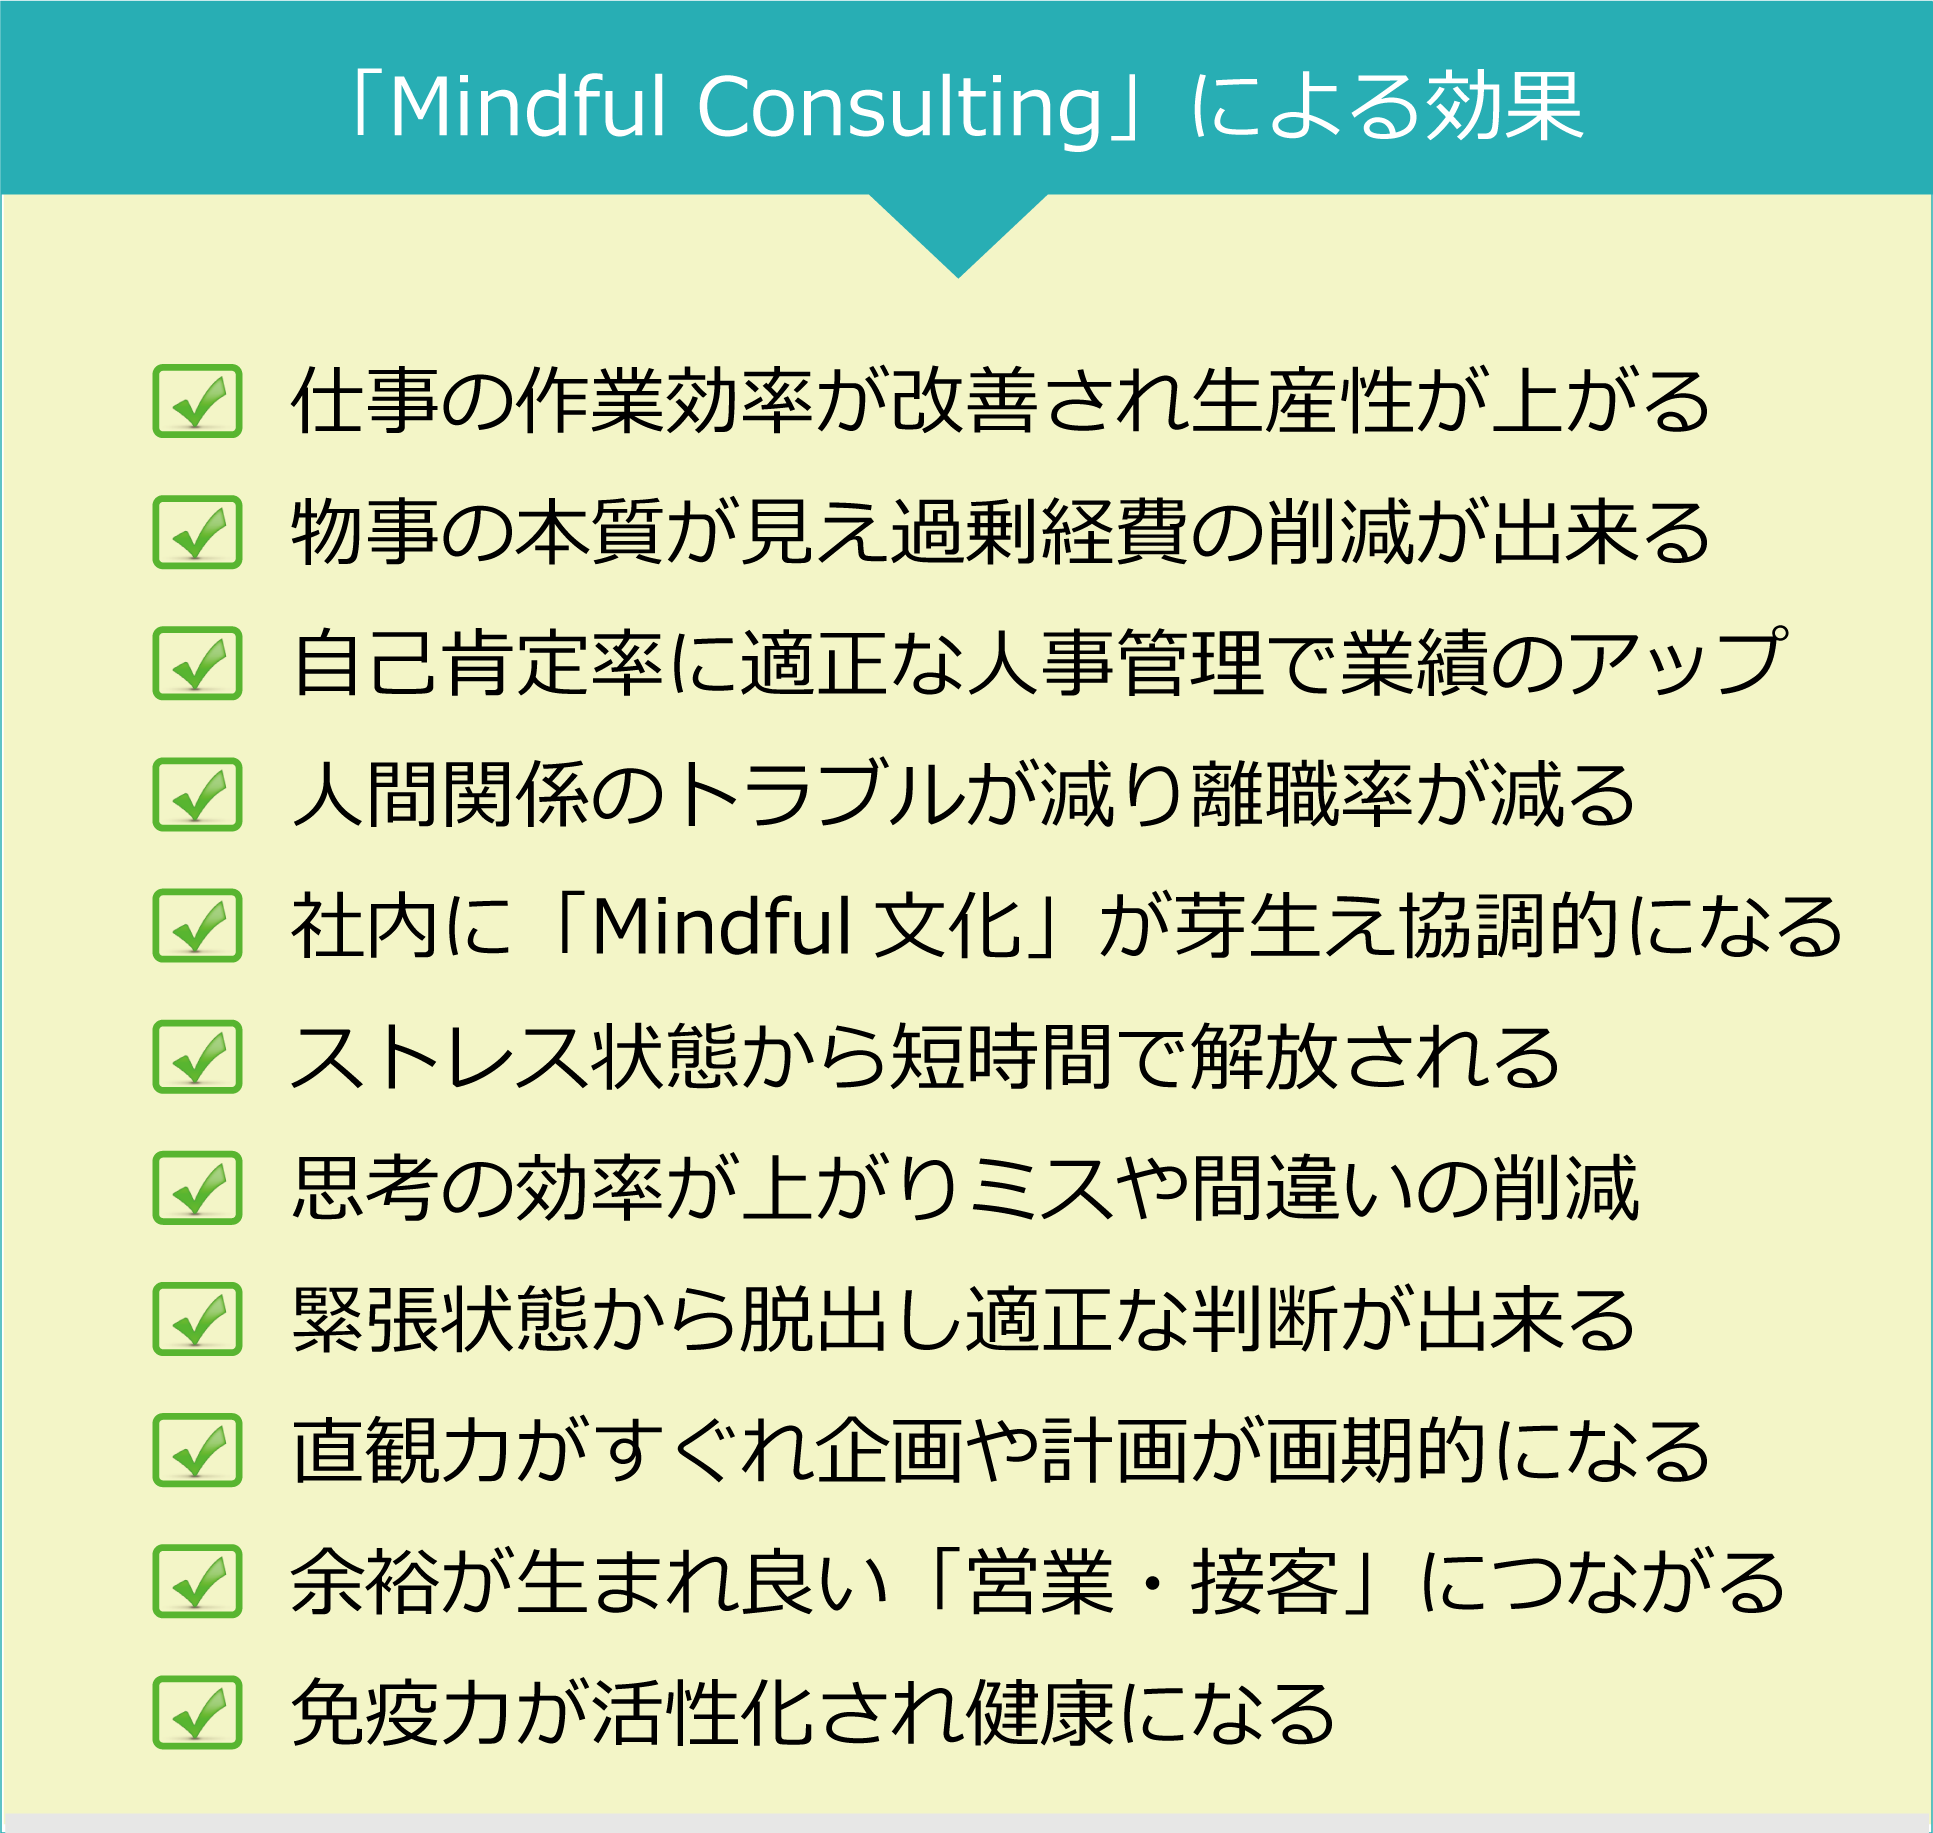 mind01-2 Mindful Consulting